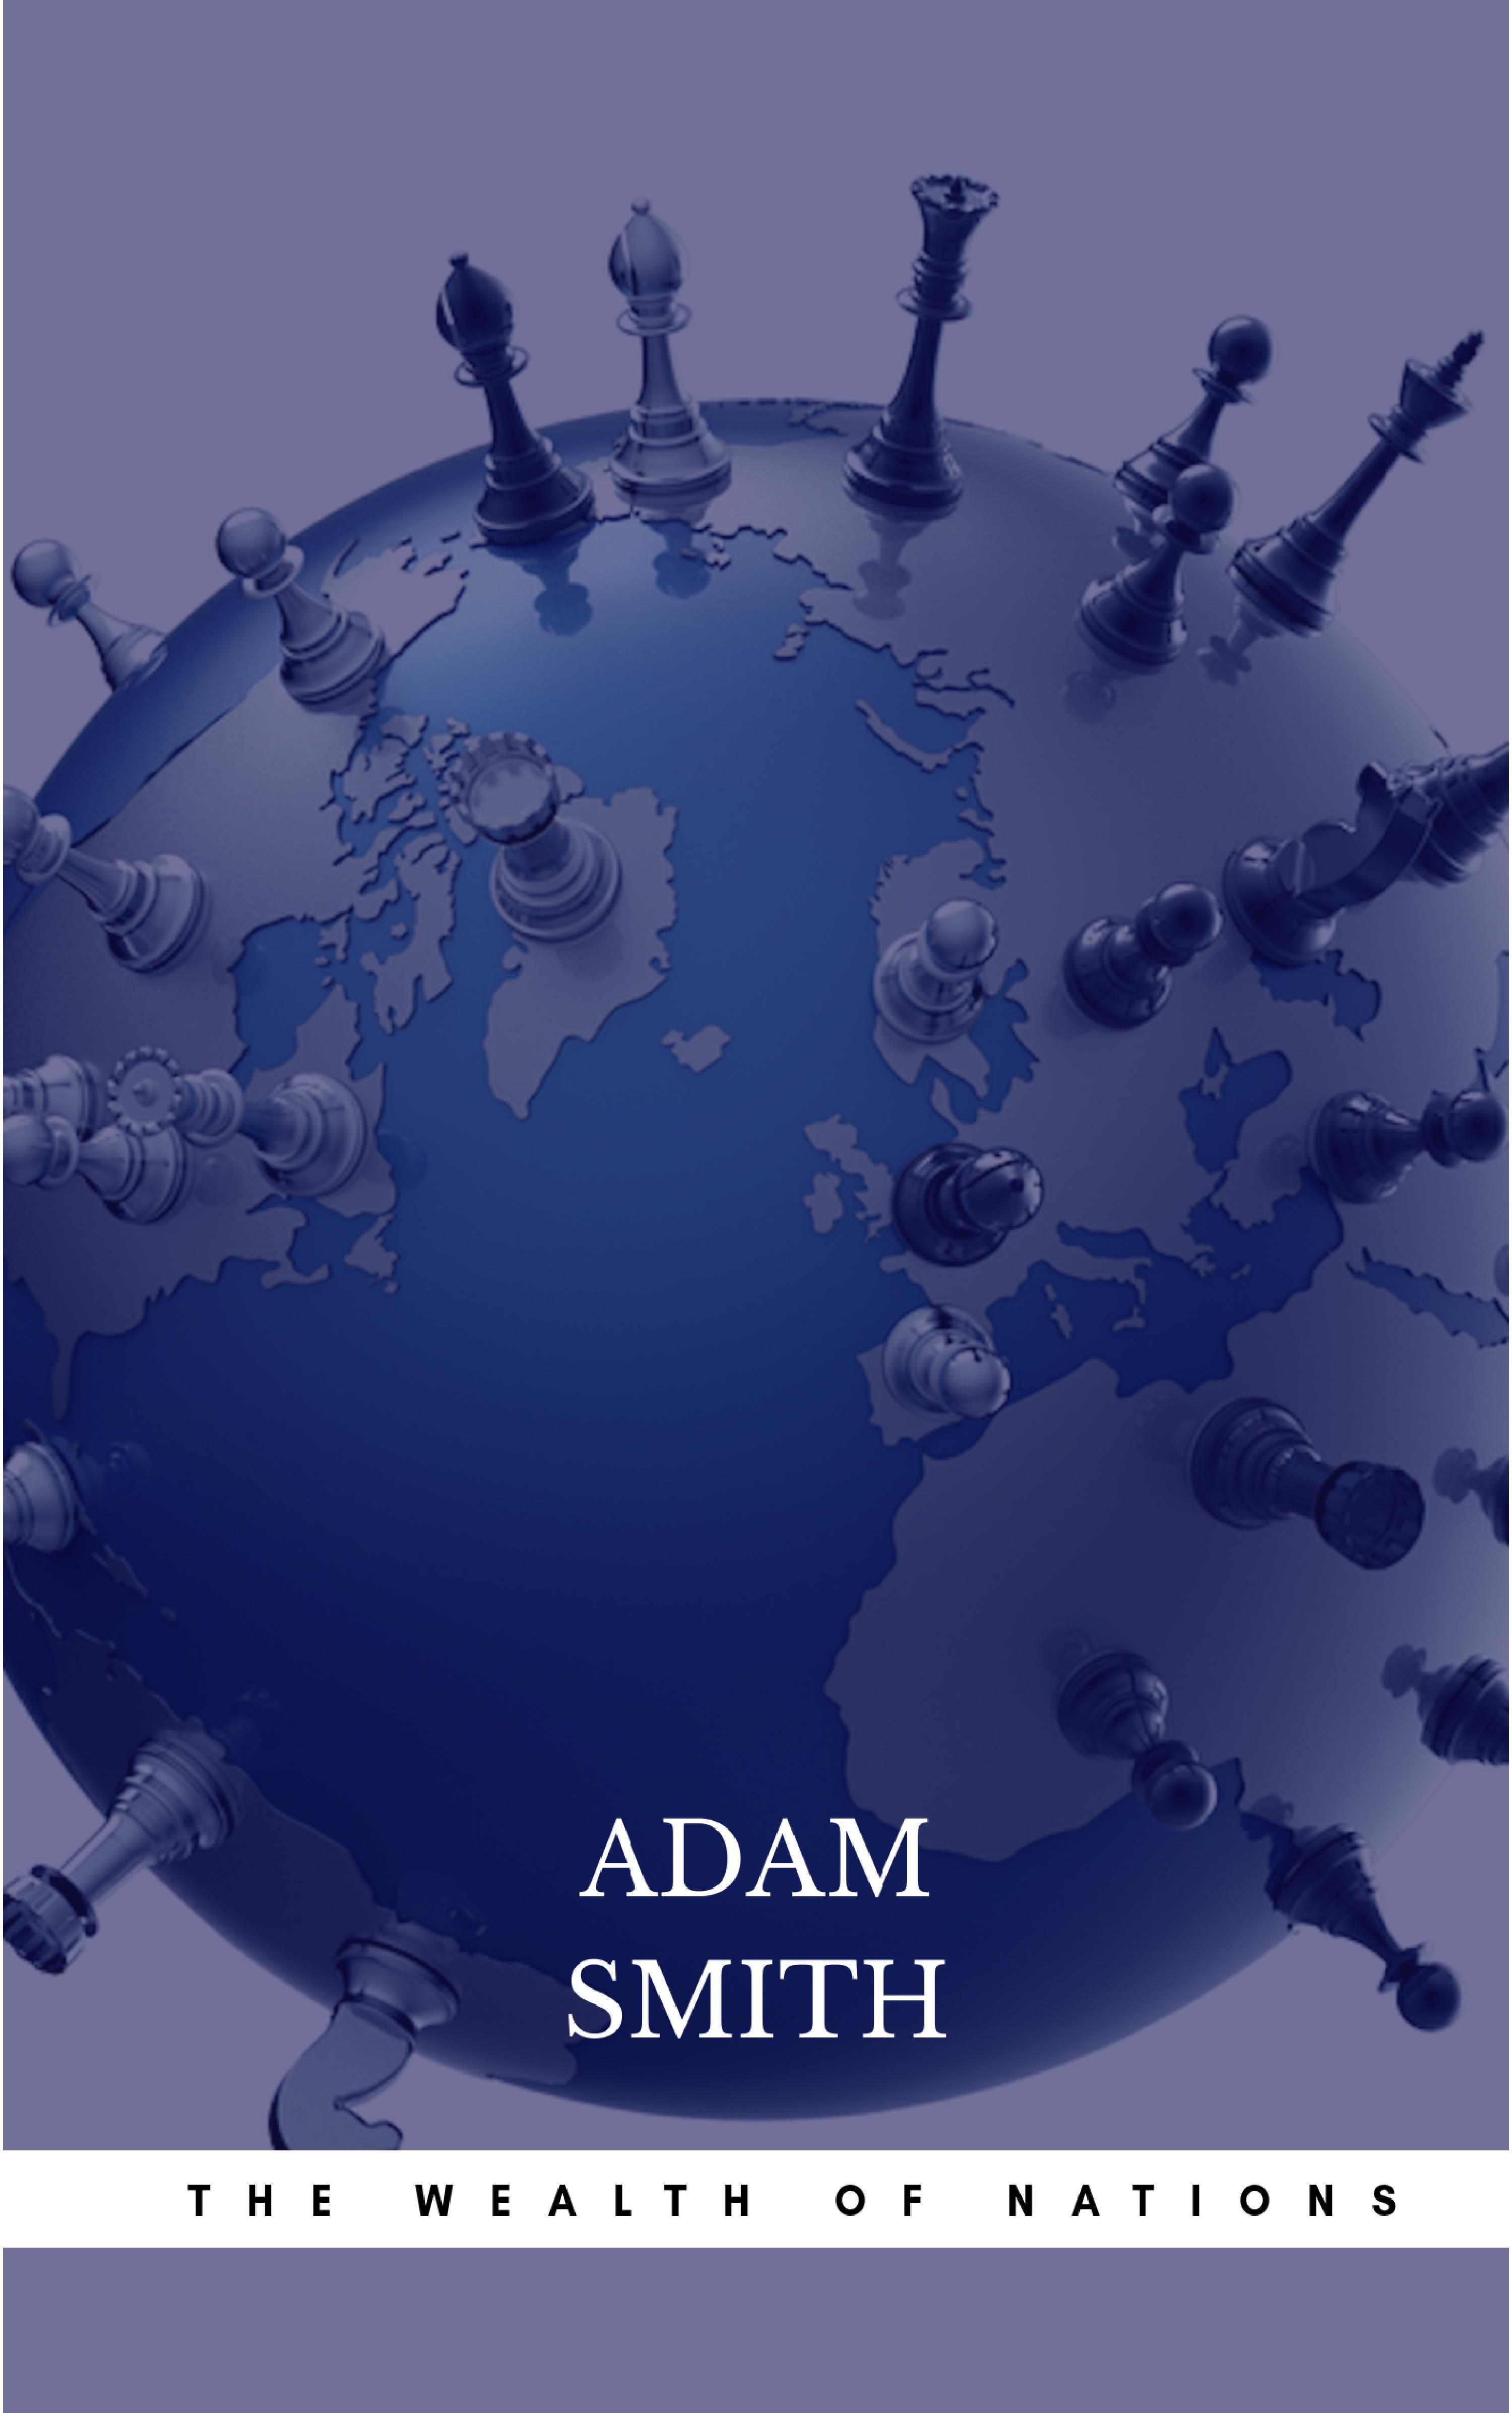 Adam Smith The Wealth of Nations: The Economics Classic - A Selected Edition for the Contemporary Reader economics for policy making selected essays of arthur m okun